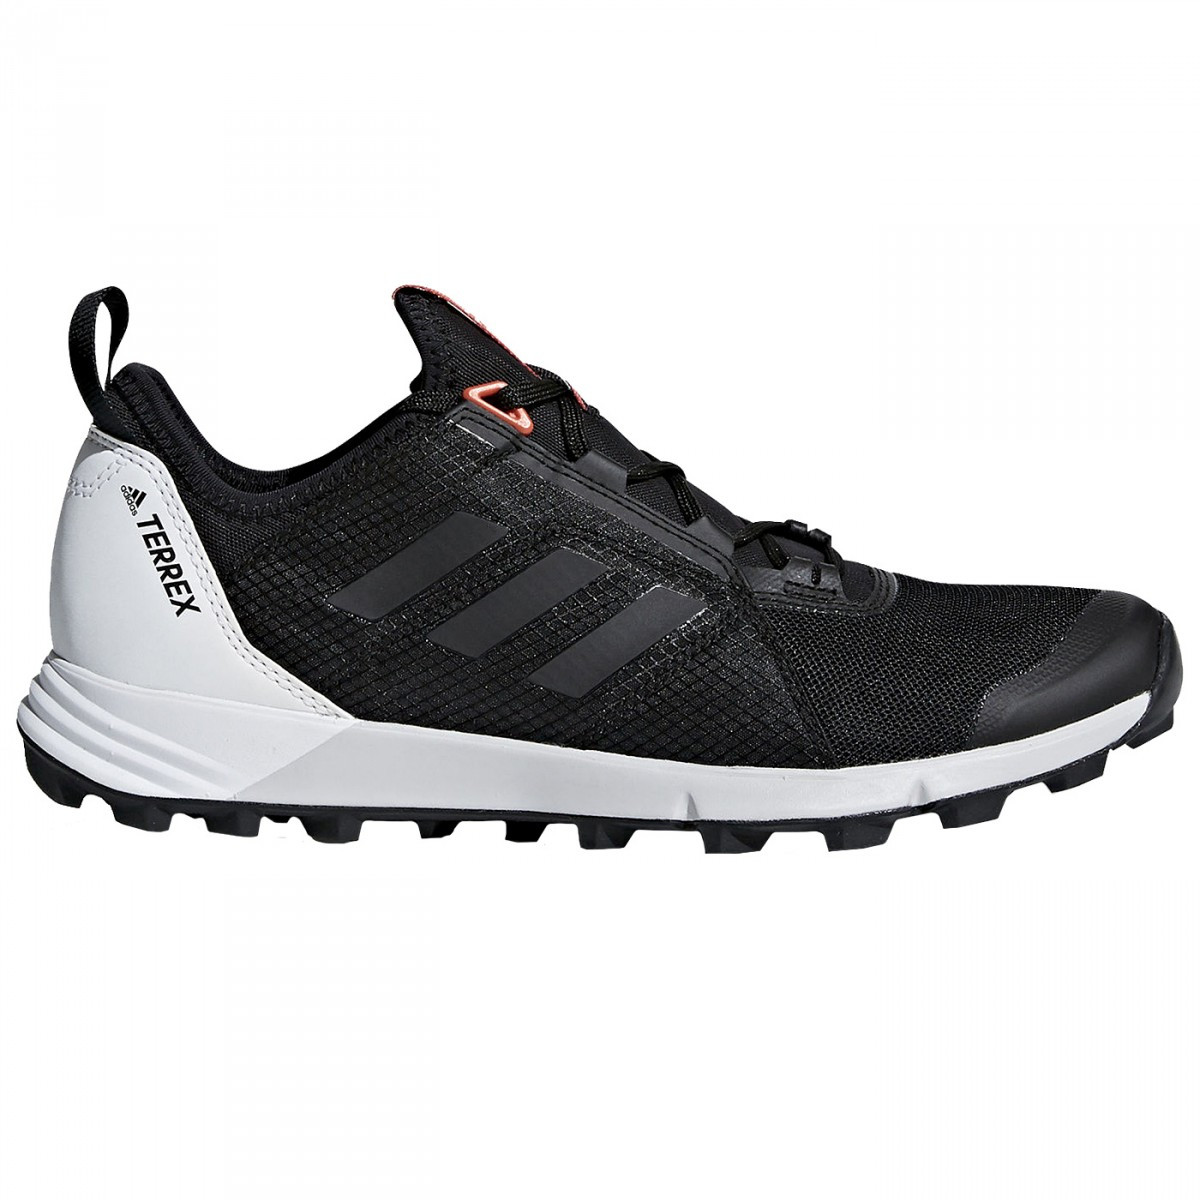 Adidas Terrex Agravic Mujer Magnífico Zapatos Trail Running Adidas Terrex Agravic Speed Mujer Of Adidas Terrex Agravic Mujer Contemporáneo Adidas Terrex Agravic Speed Zapatillas Para Correr Mujer